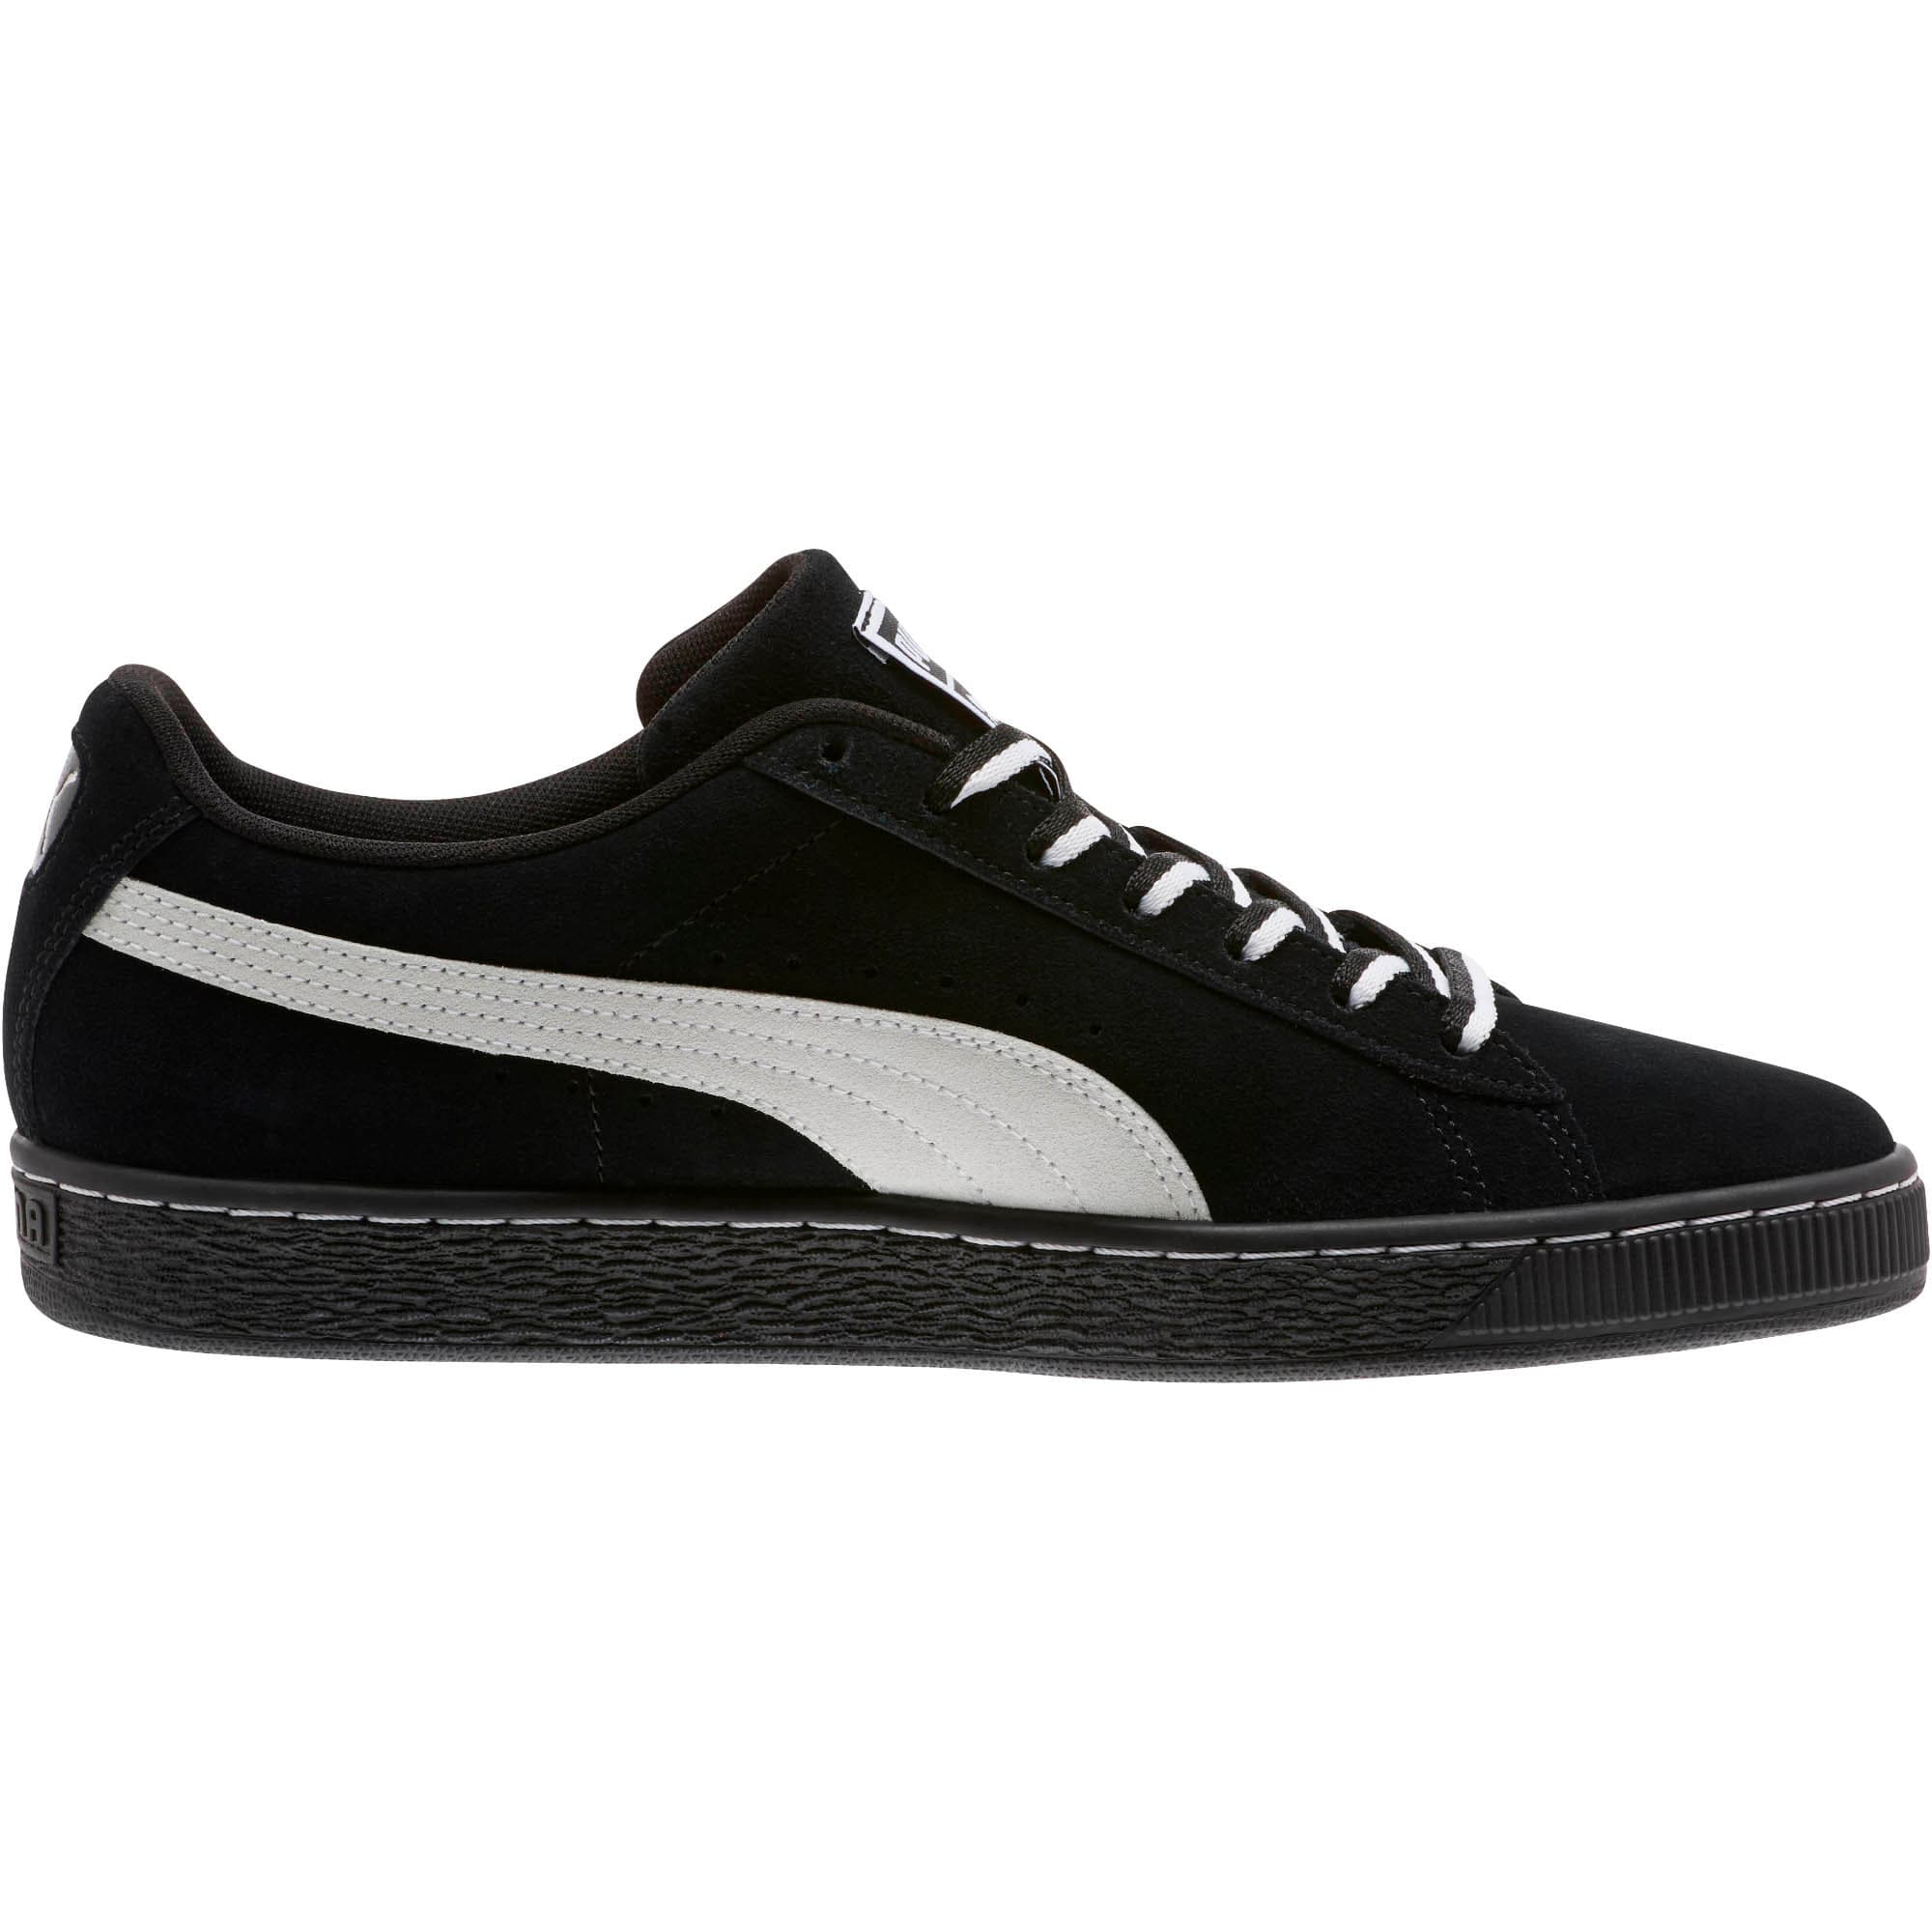 """Thumbnail 3 of Suede Classic """"Other Side"""" Sneakers, Puma Black-Puma White, medium"""